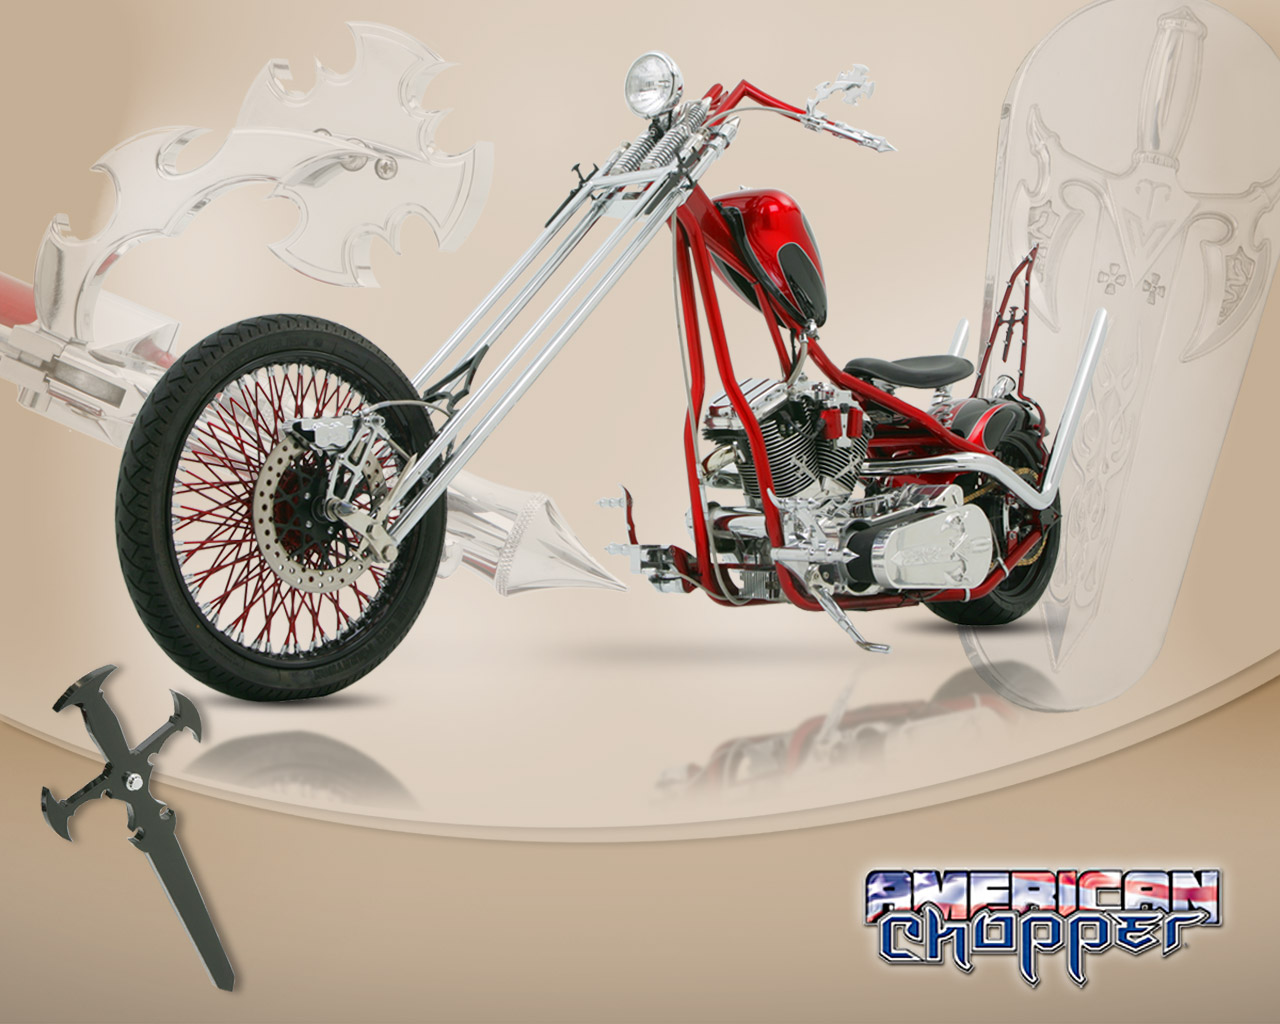 American chopper   Orange County Choppers Wallpaper 124422 1280x1024